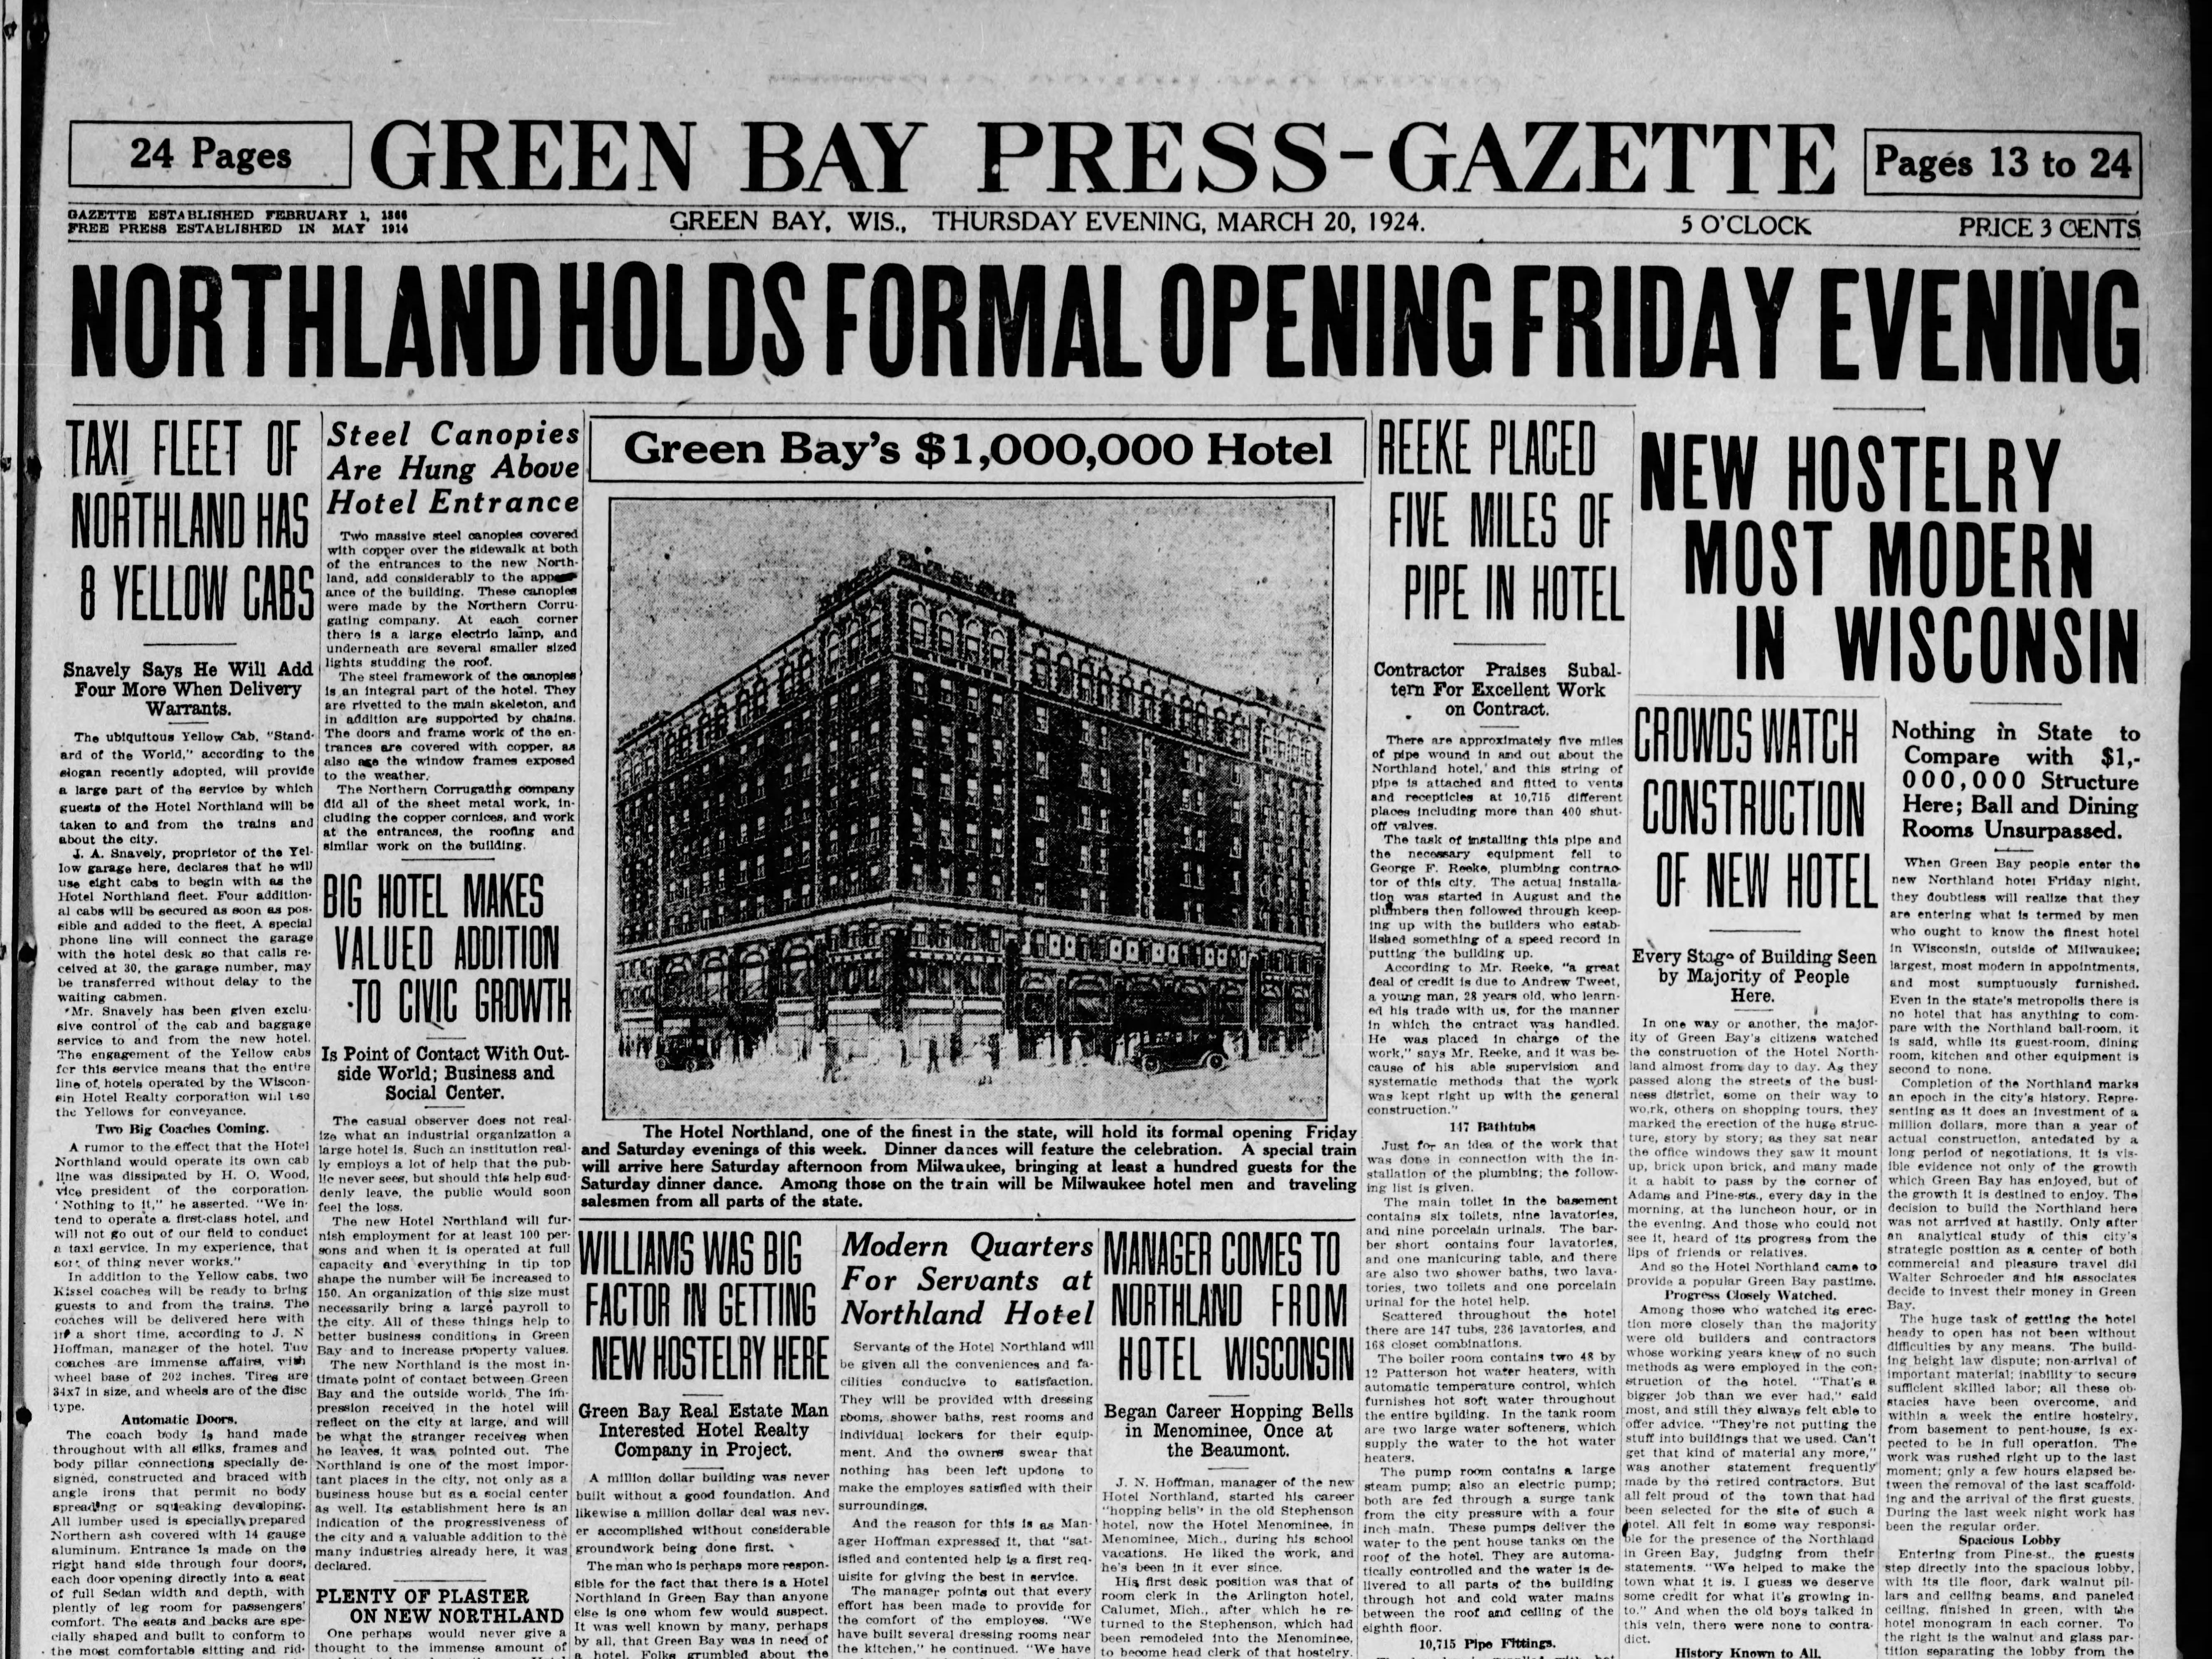 The March 20, 1924 front page of a special section in the Green Bay Press Gazette announcing the opening of the Hotel Northland.